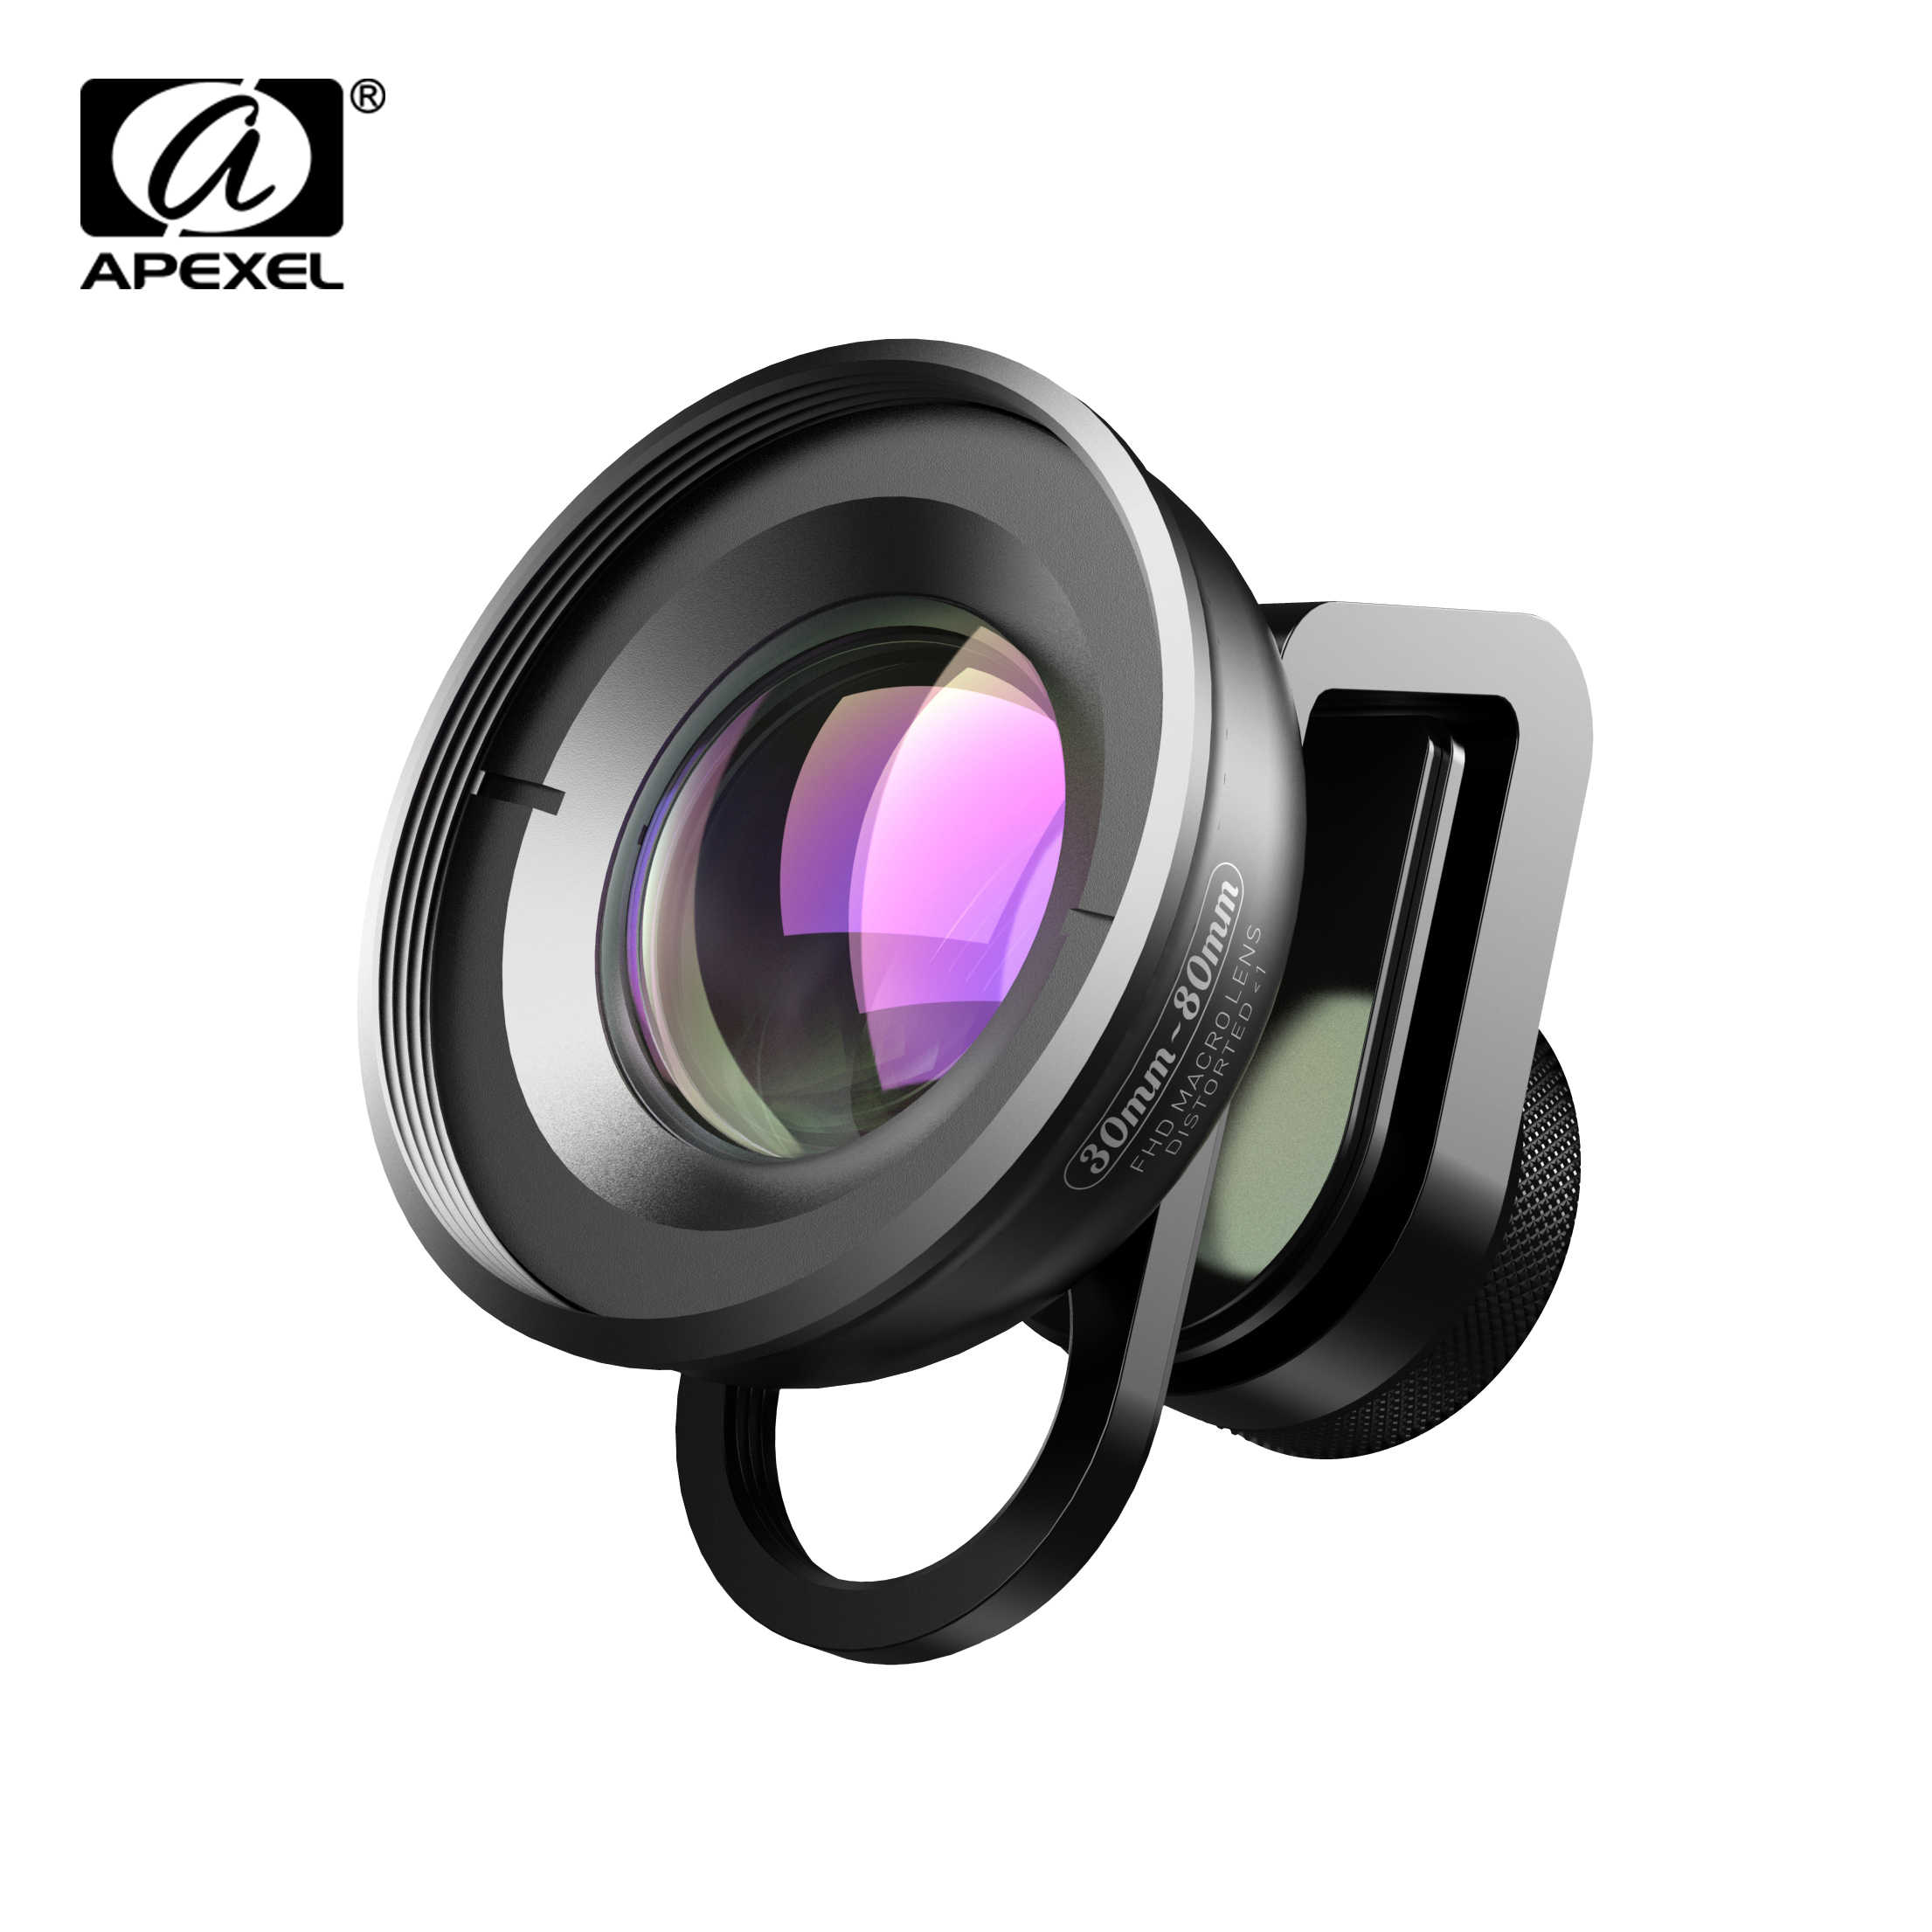 APEXEL HD Optic 30mm-80mm Macro Lens Phone Camera Lens 10x Super Macro Lentes for iPhonex xs max Samsung Xiaomi huawei Cellphone